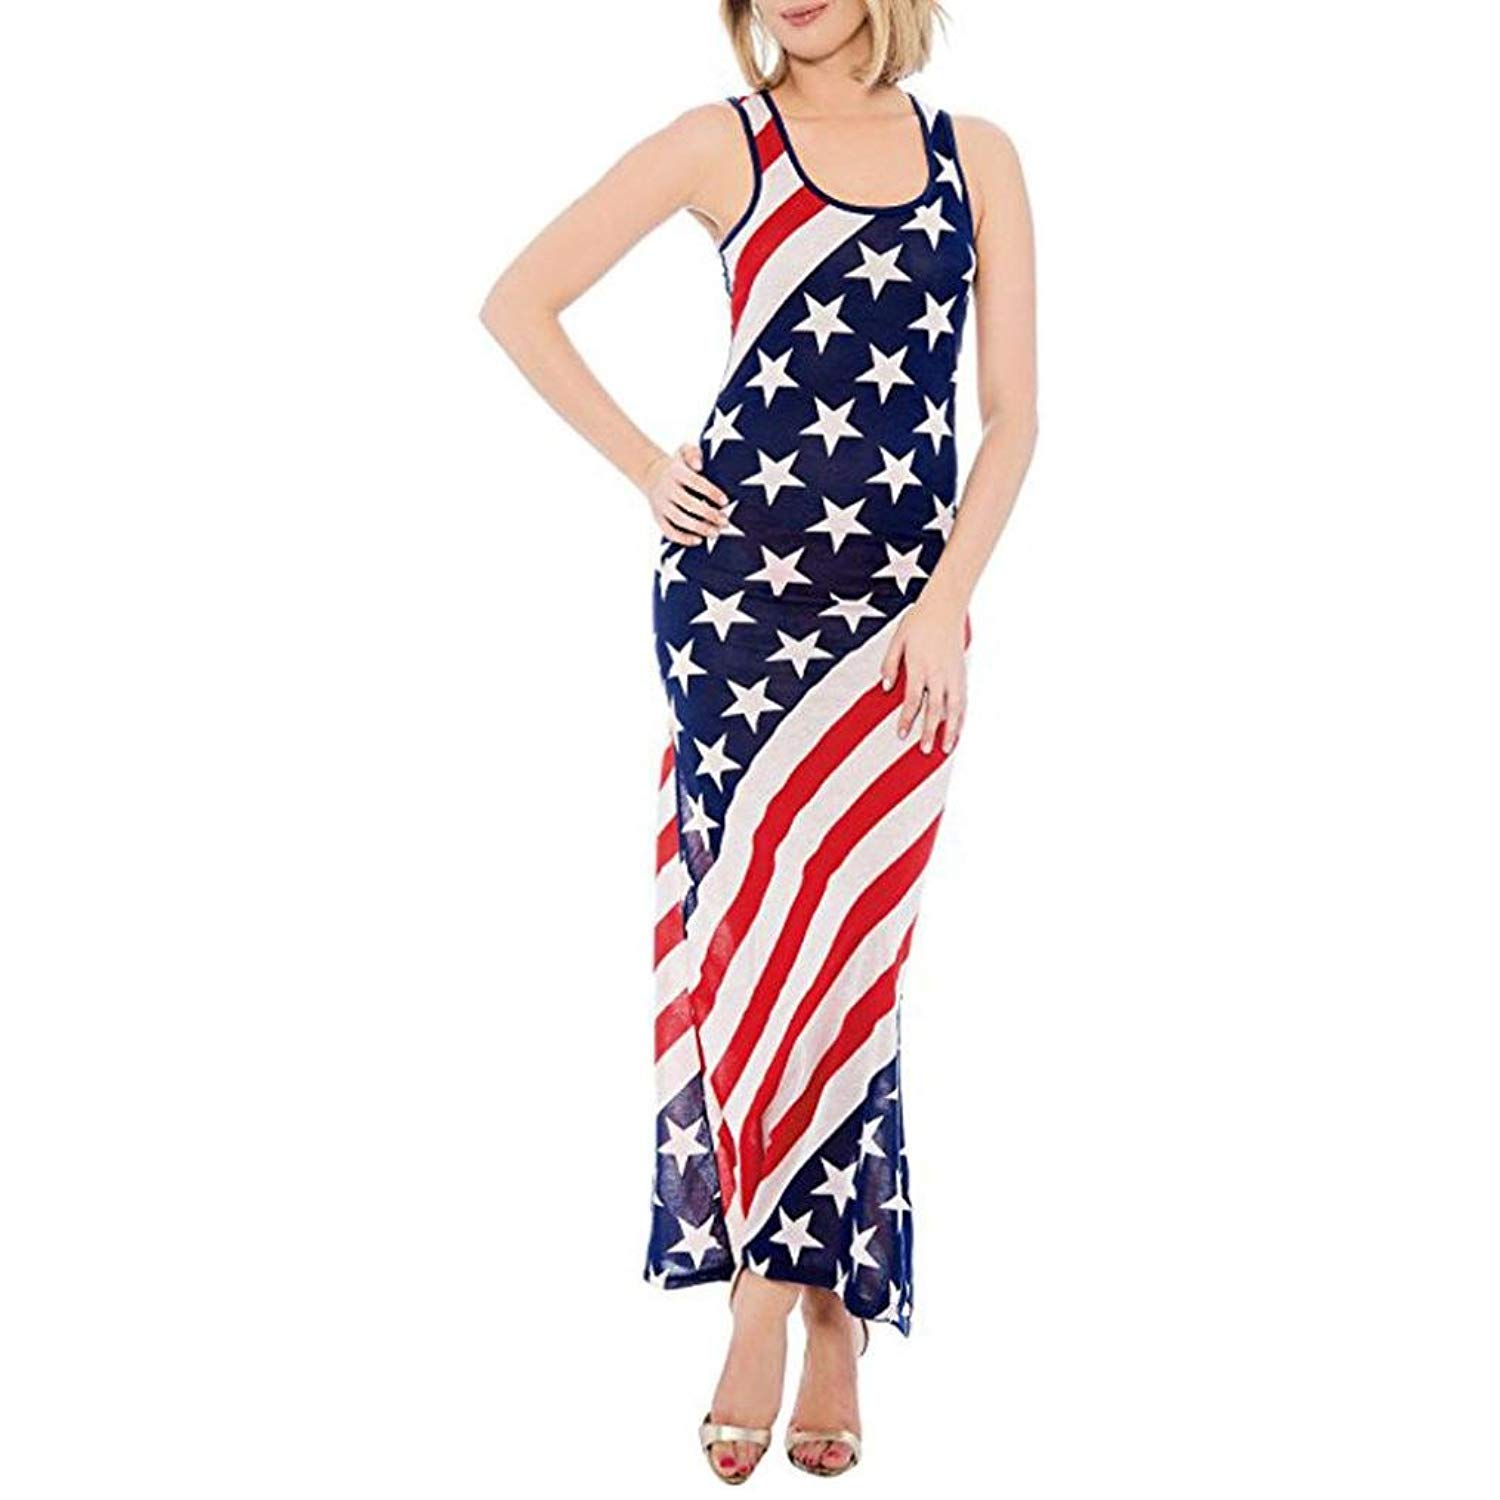 127532884557 Get Quotations · vermers Women Long Dress, July 4th American Flag Summer  Maxi Dresses Stars and Stripes